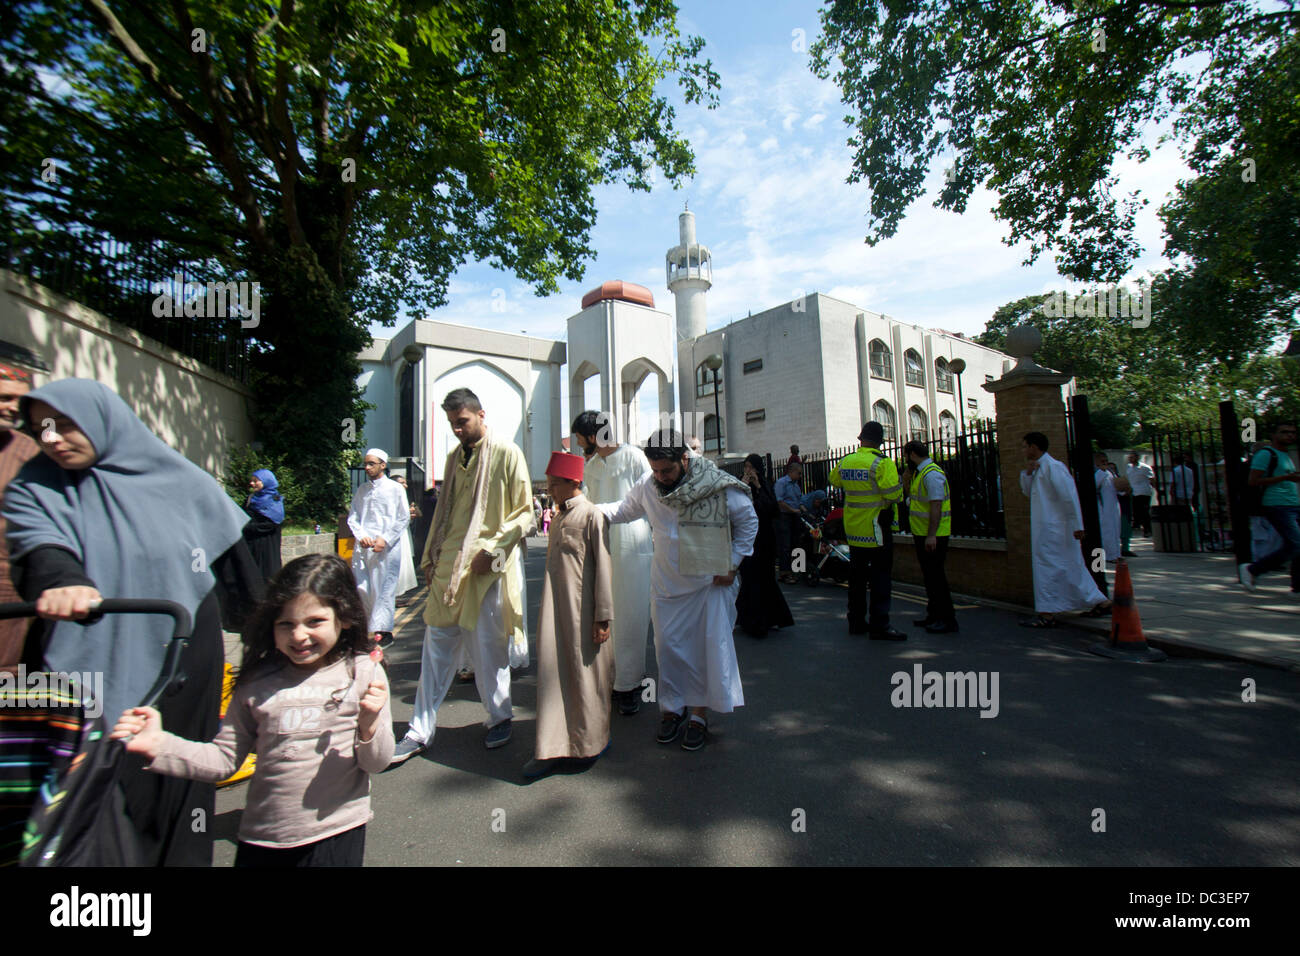 London, UK. 8th August 2013. Muslim families  celebrates Eid at the Regent's Mosque in London which marks the - Stock Image